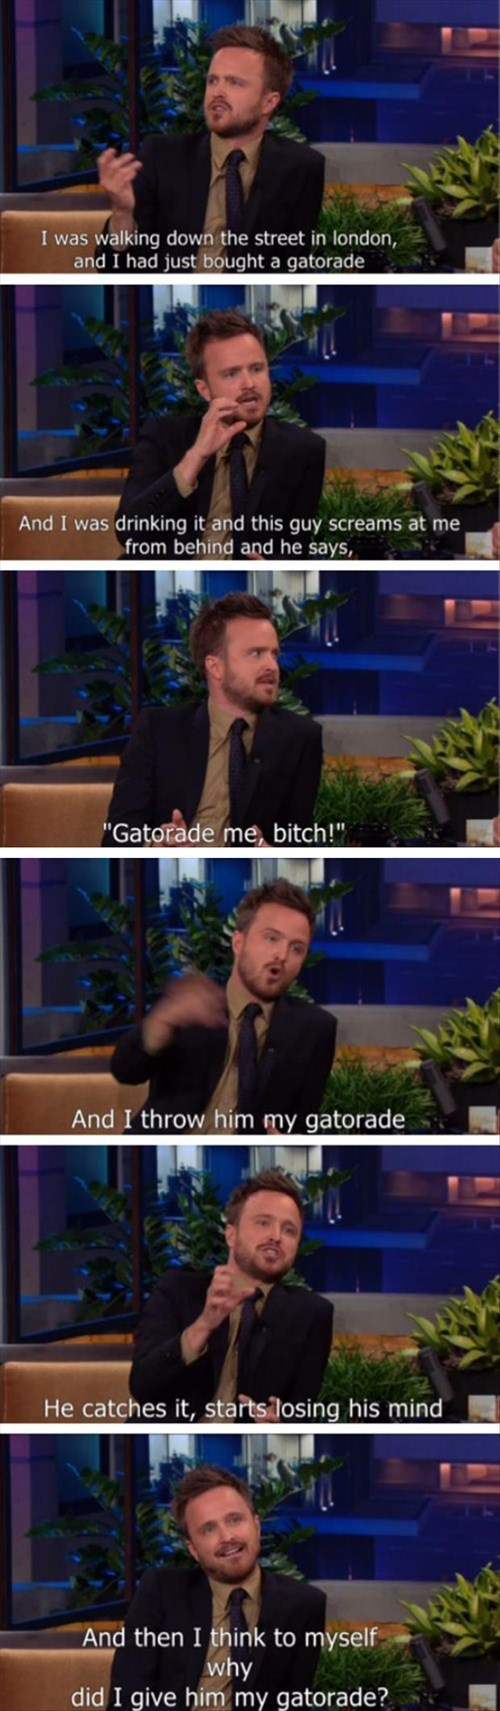 aaron paul breaking bad fans funny - 8177699328